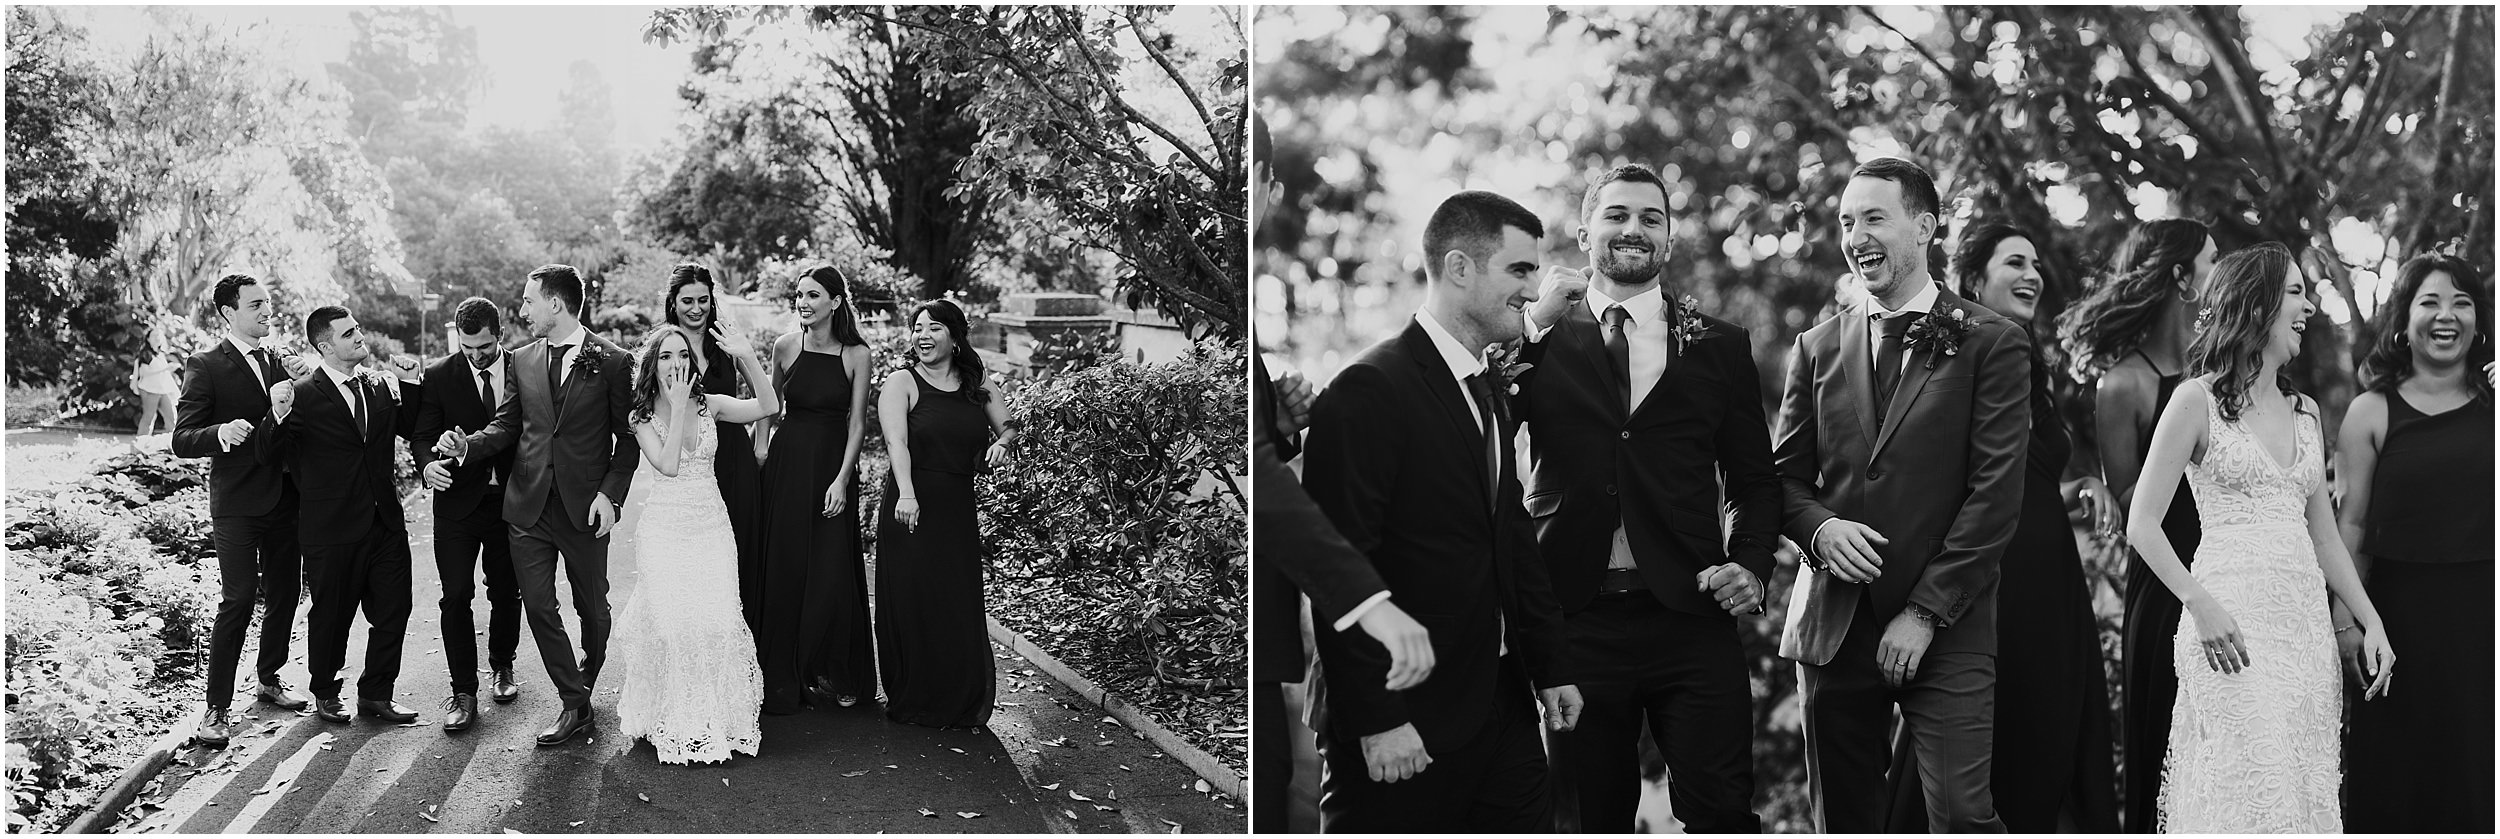 Wedding Portraits Royal Botanical Gardens Sydney